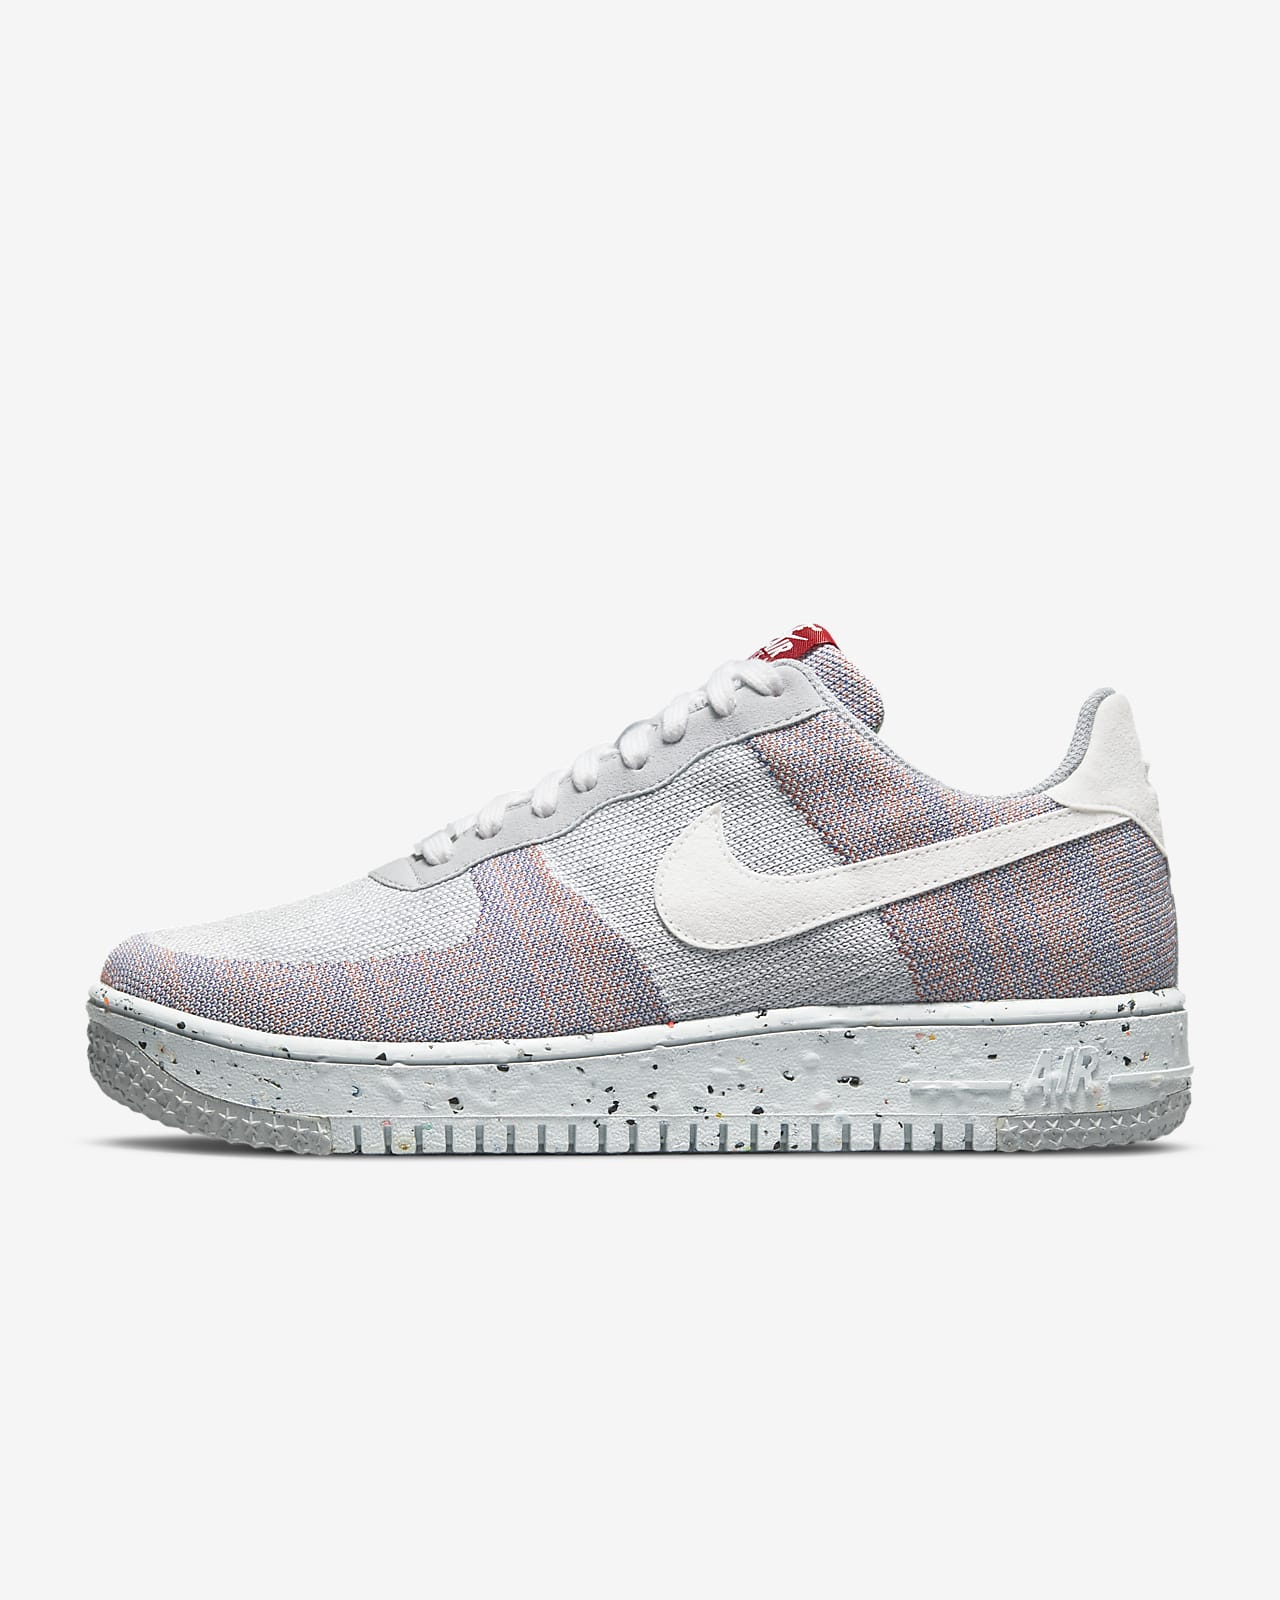 Nike Air Force 1 Crater Flyknit Men's Shoe